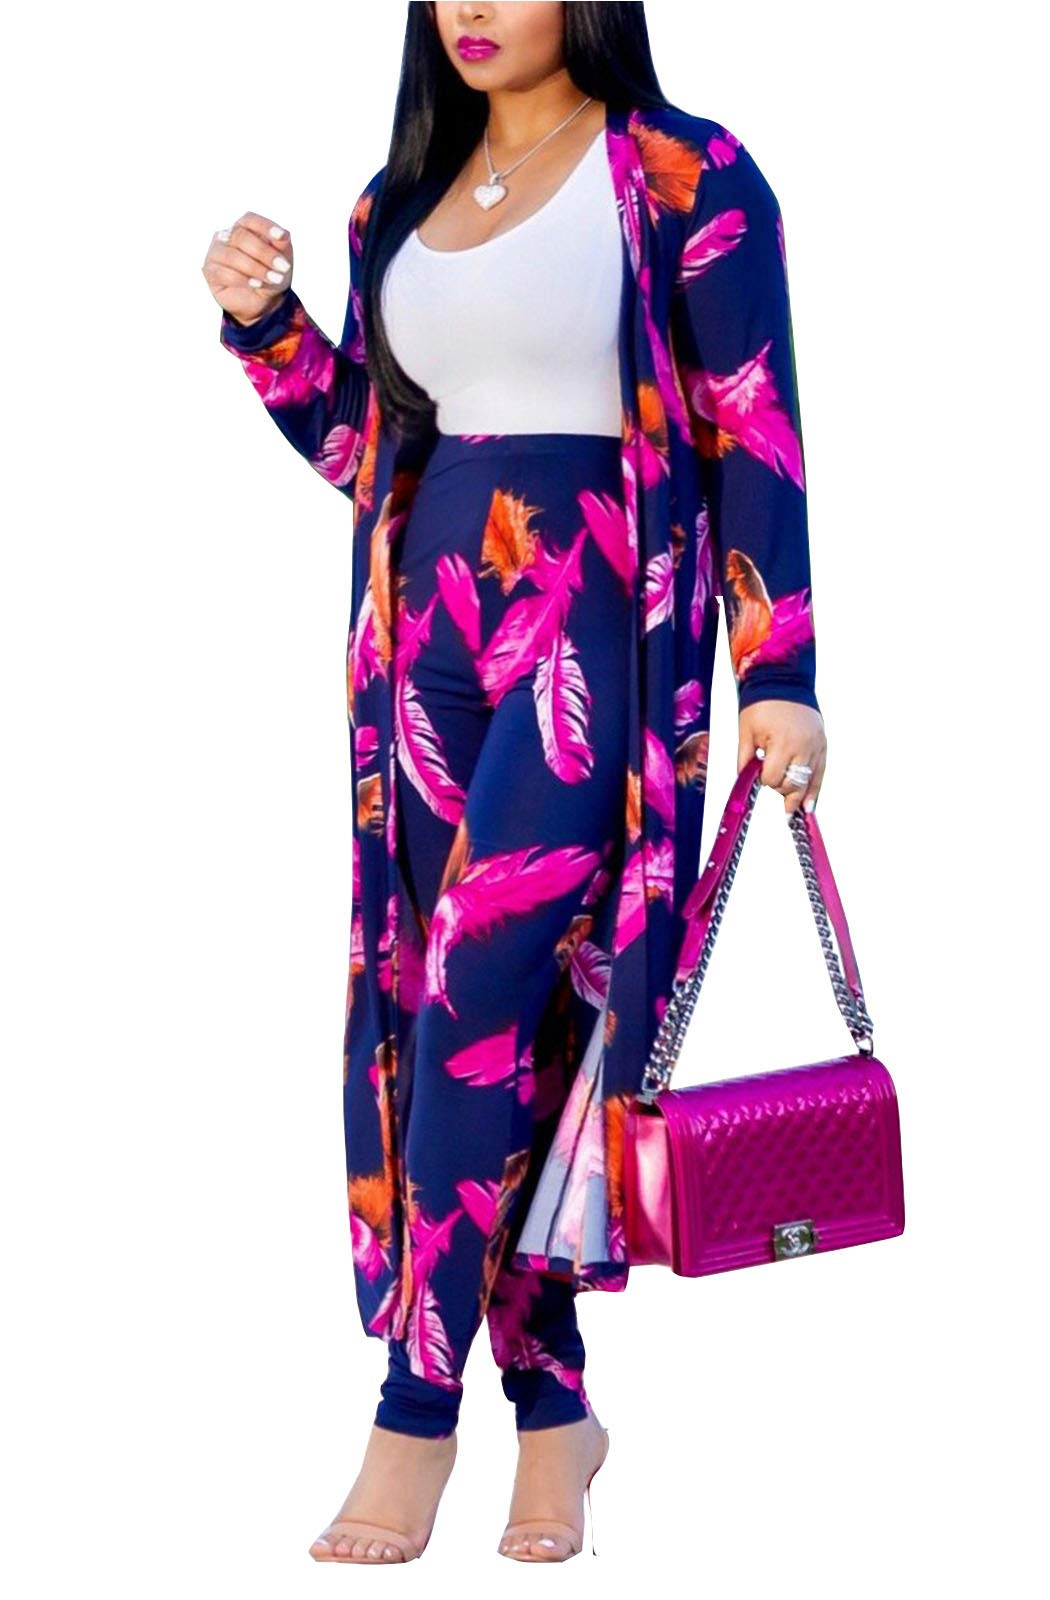 MarcoJudy Womens Long Sleeve Stripe and Floral Cardigan Cover up Long Pants 2 Piece Suit Set Outfits (Medium, Purple)